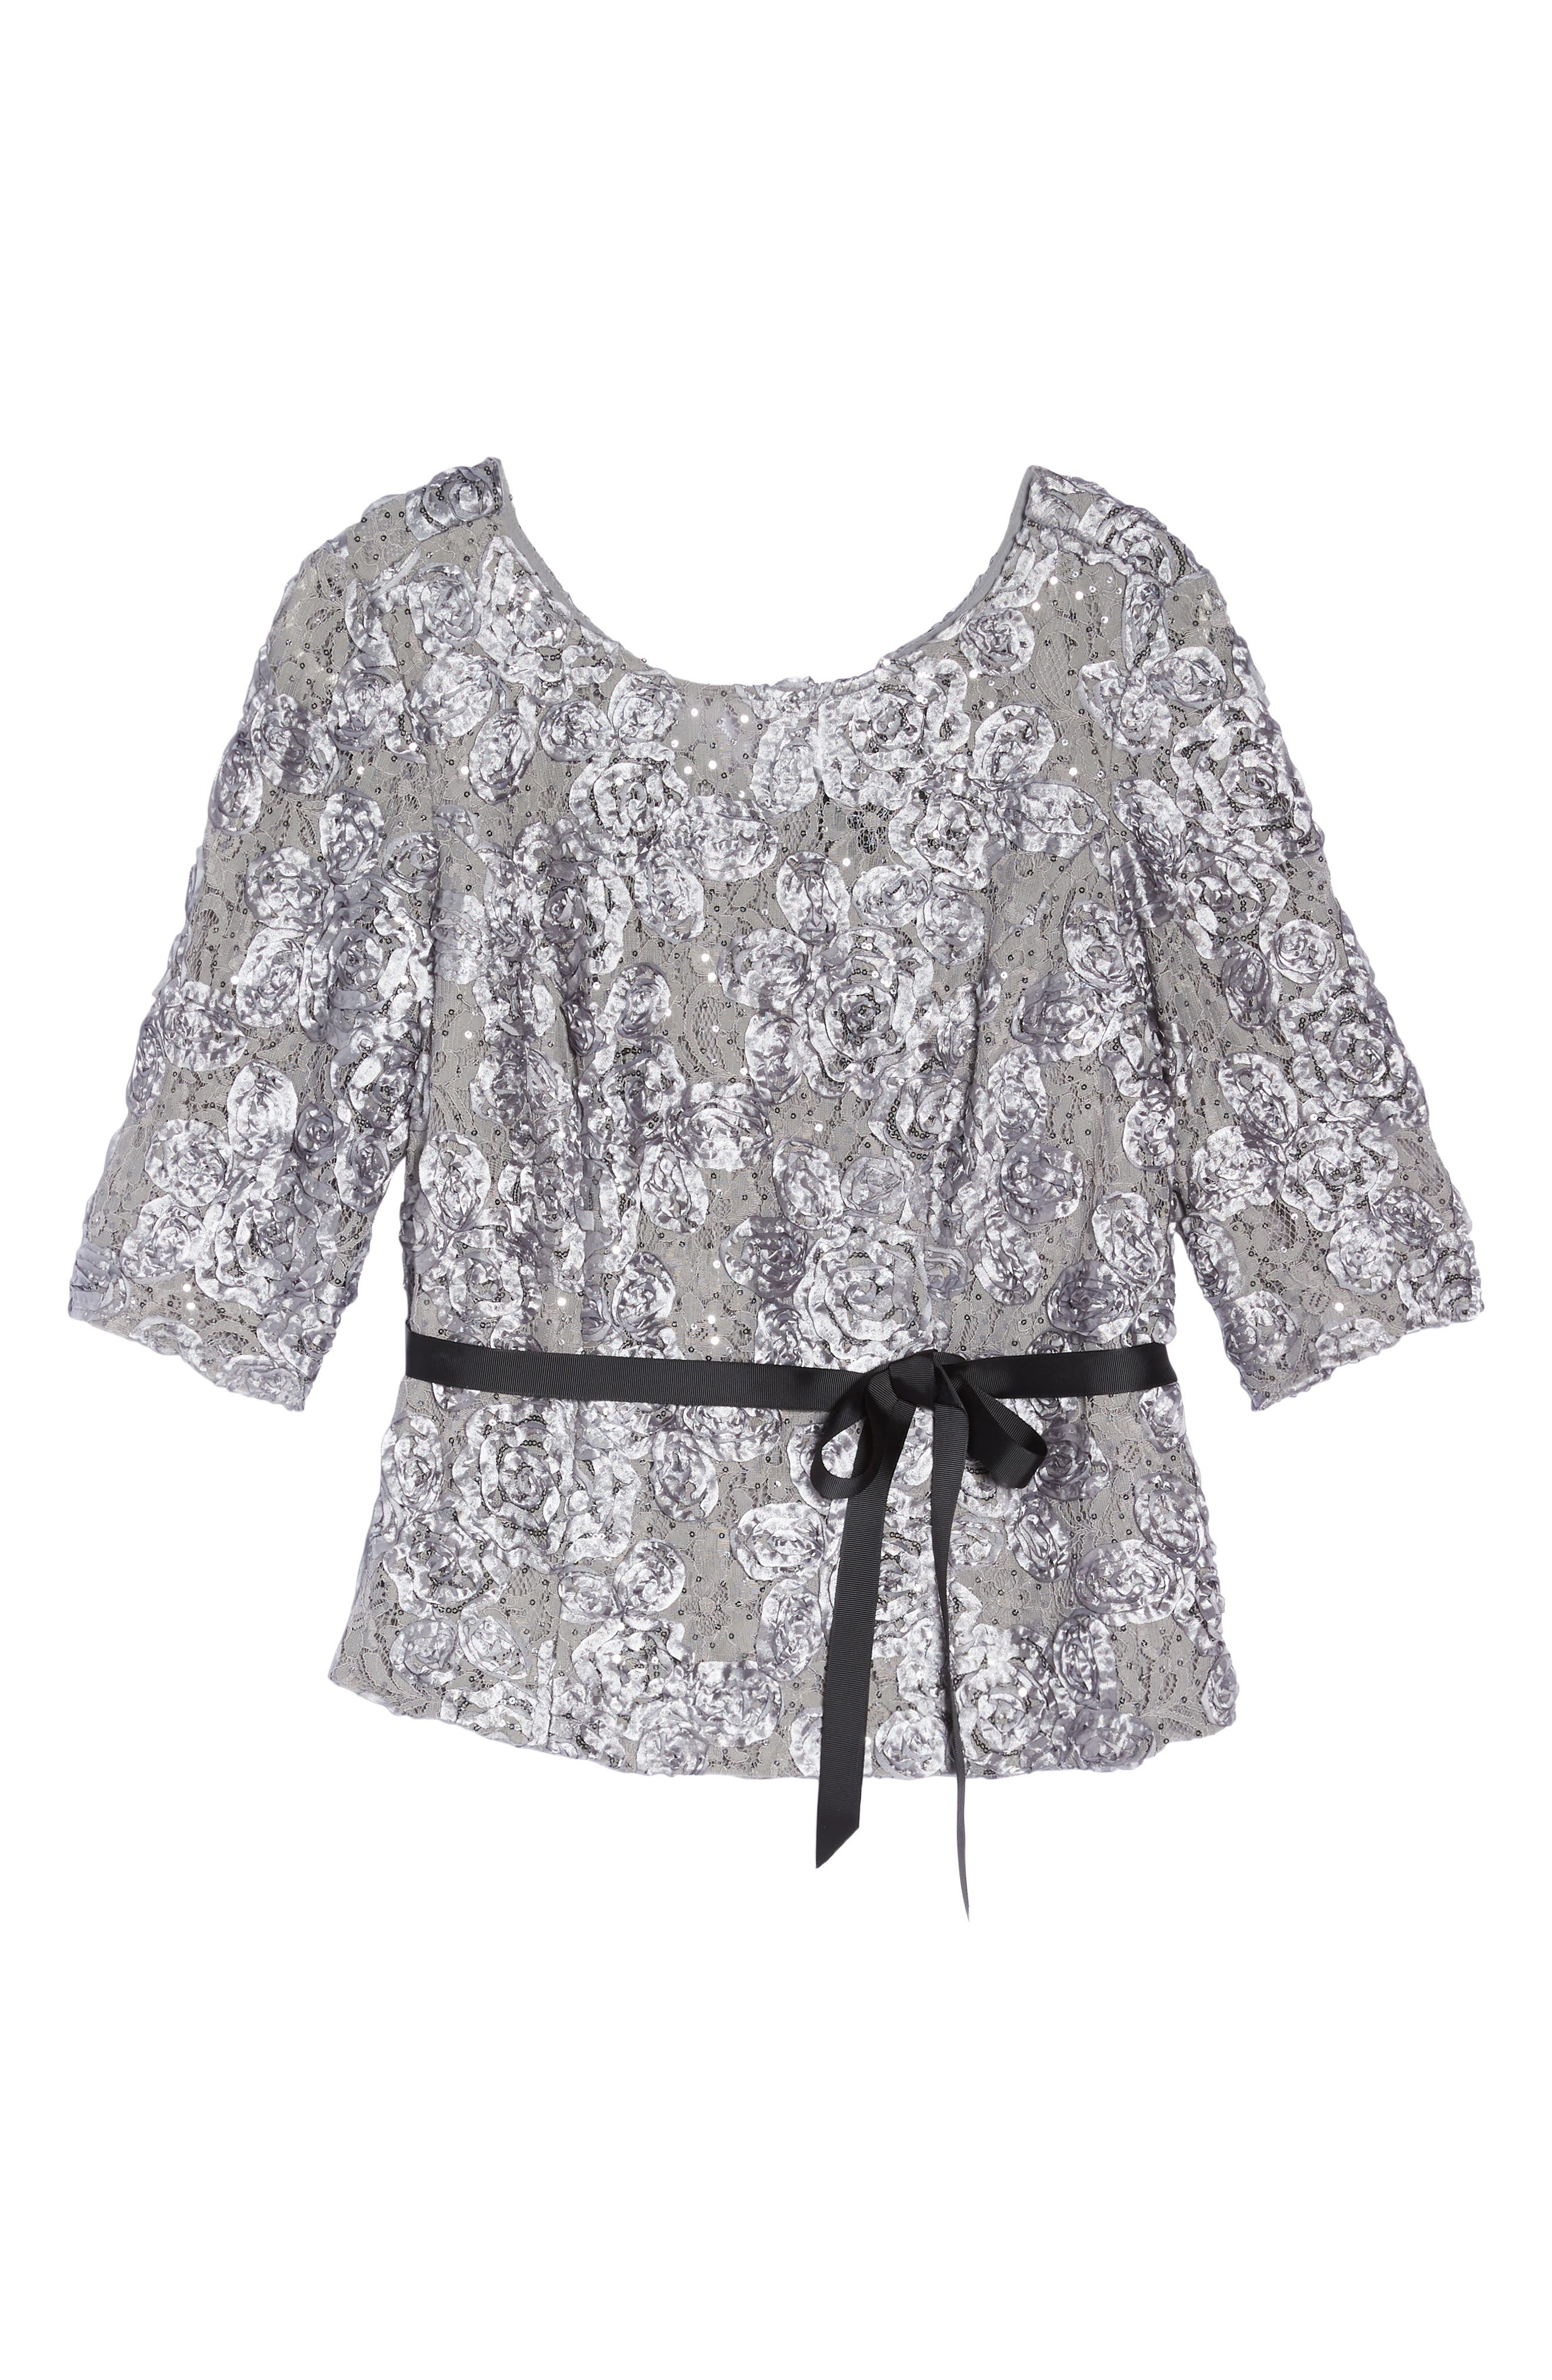 Rosette Lace Blouse,                             Alternate thumbnail 6, color,                             040